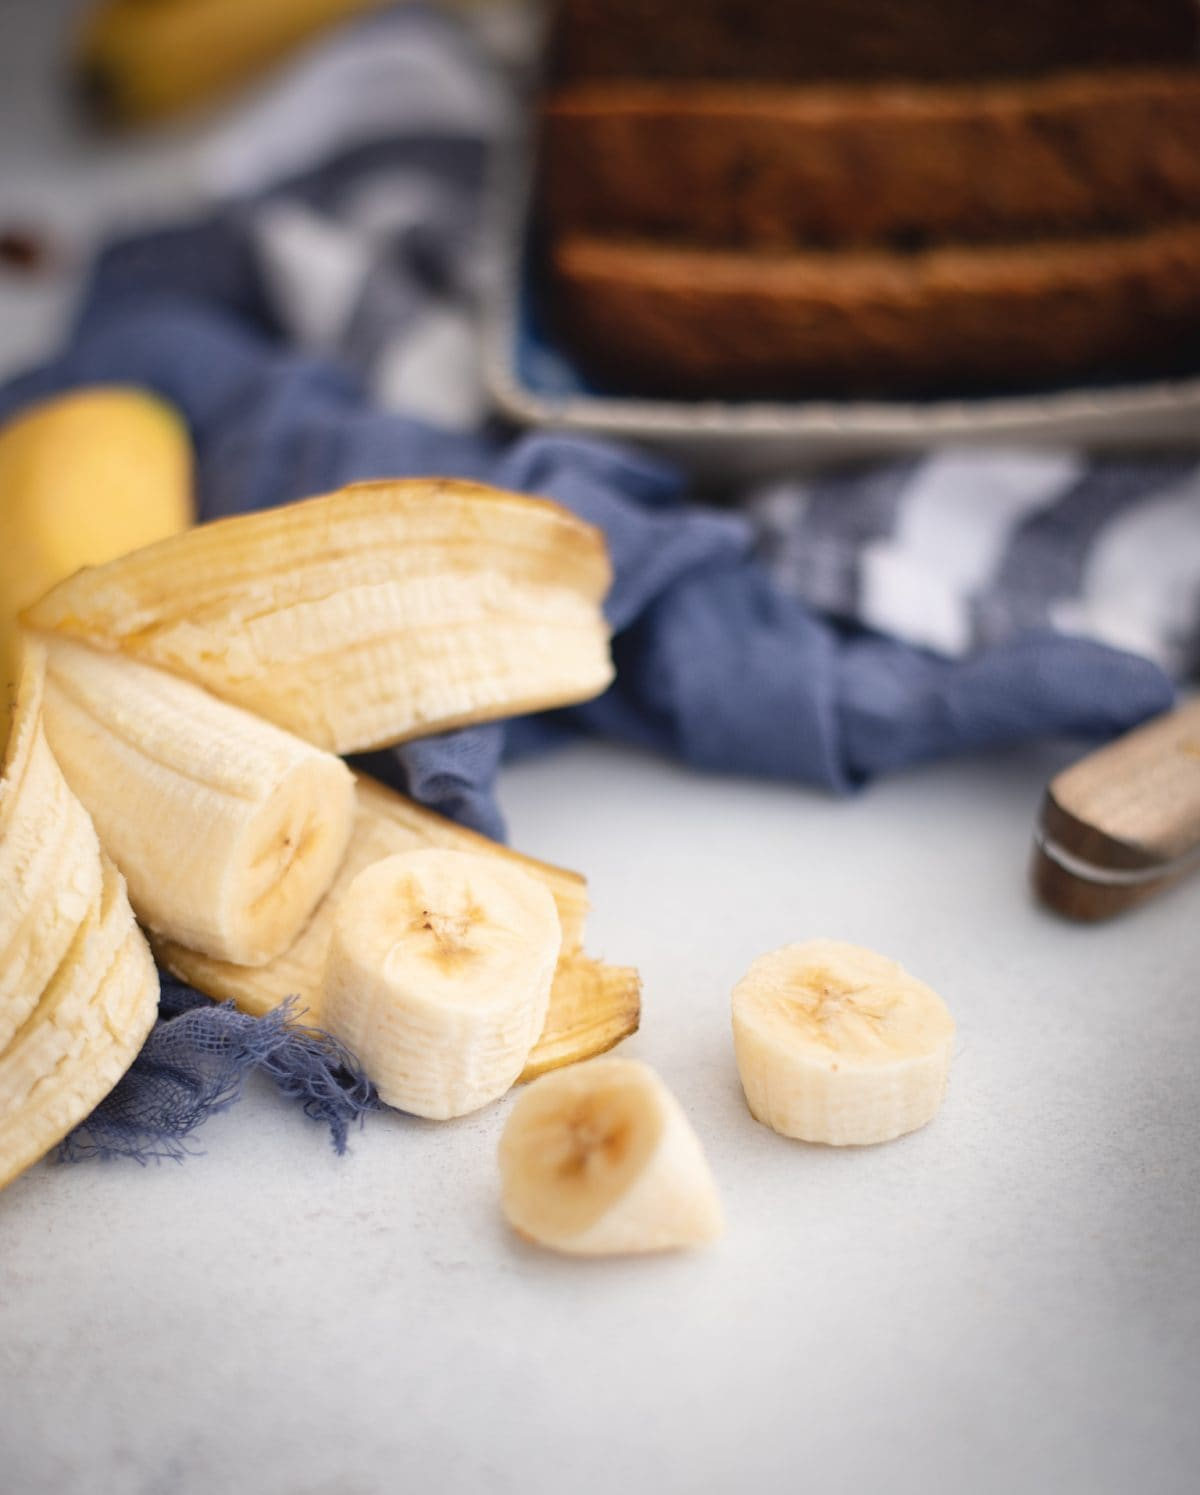 Sliced banana with banana bread loaf in background